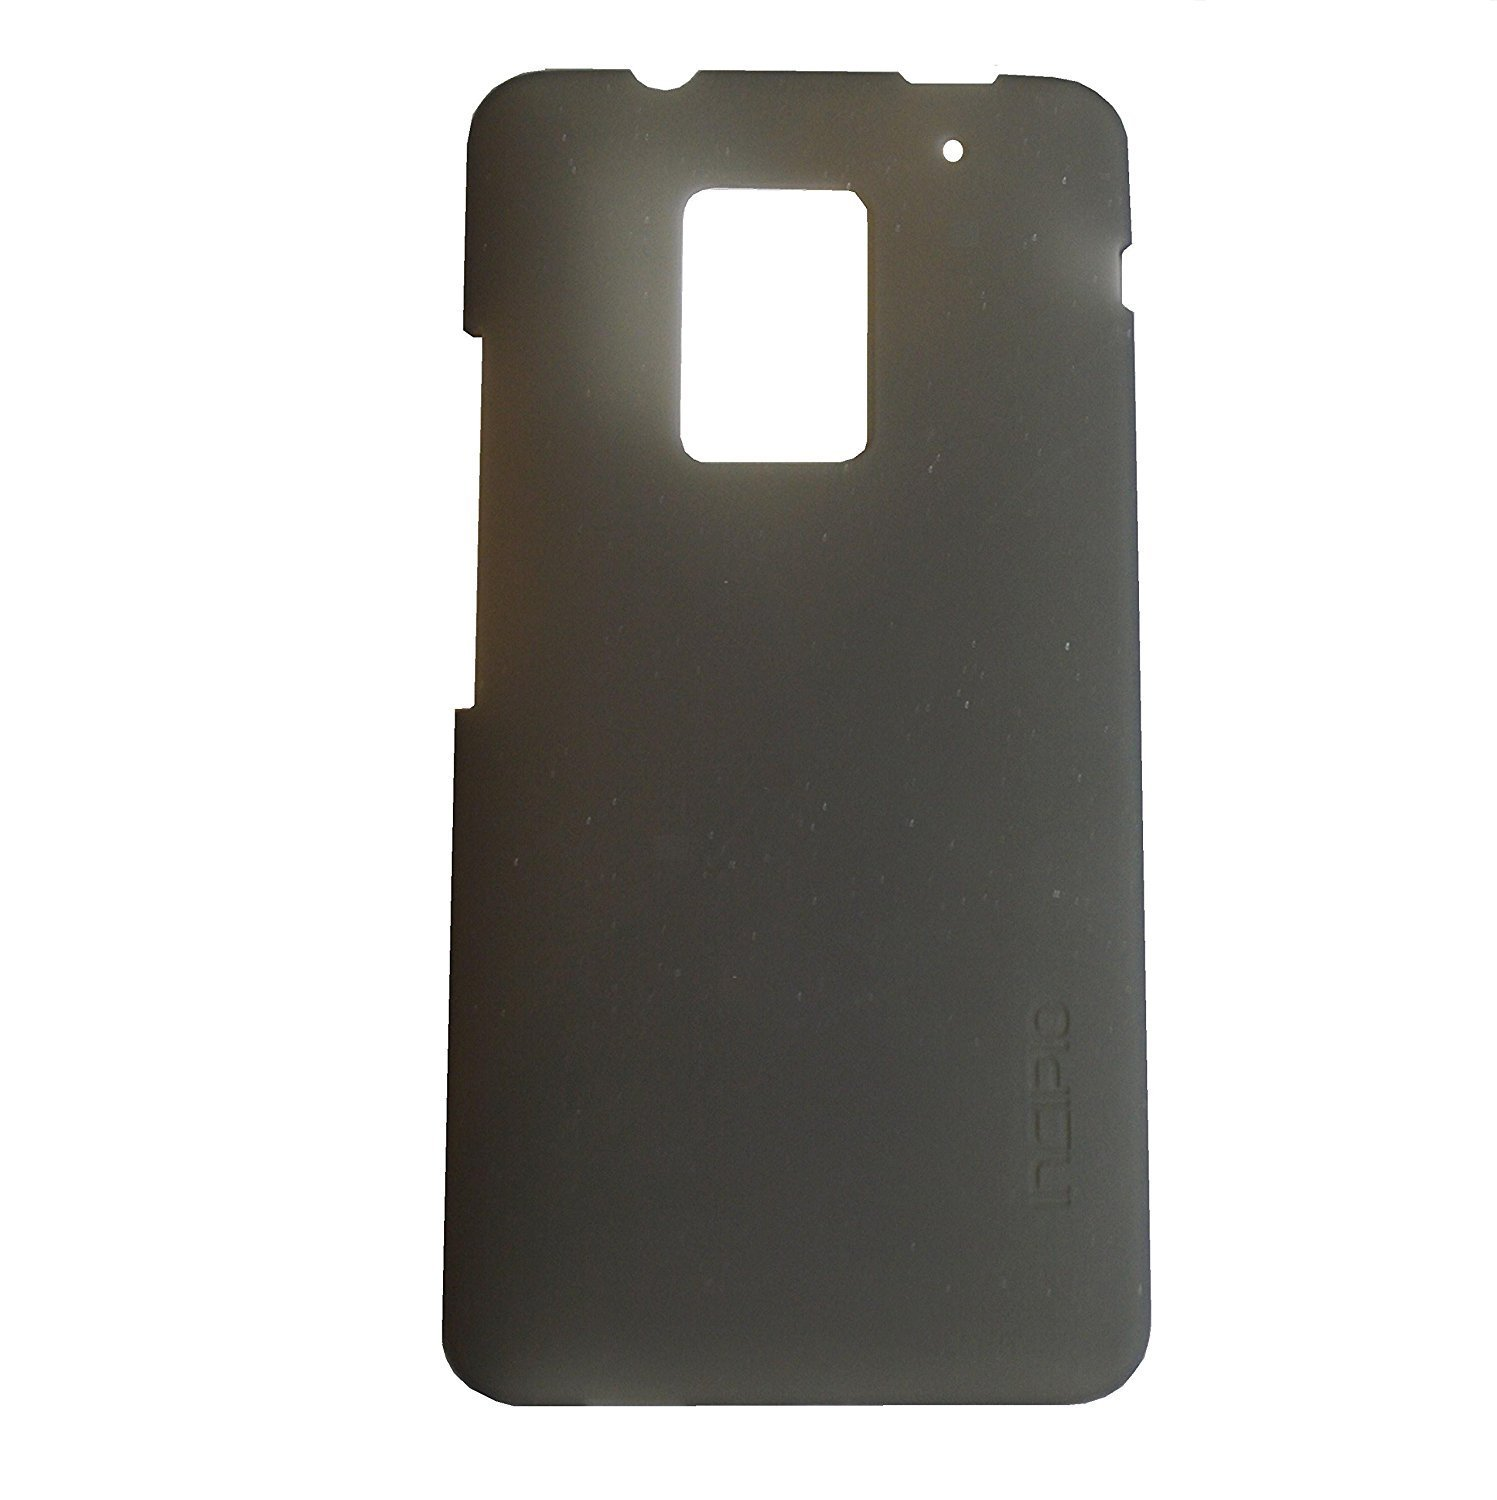 Incipio Feather Ultra Thin Snap-on Case for HTC One Max - Gray